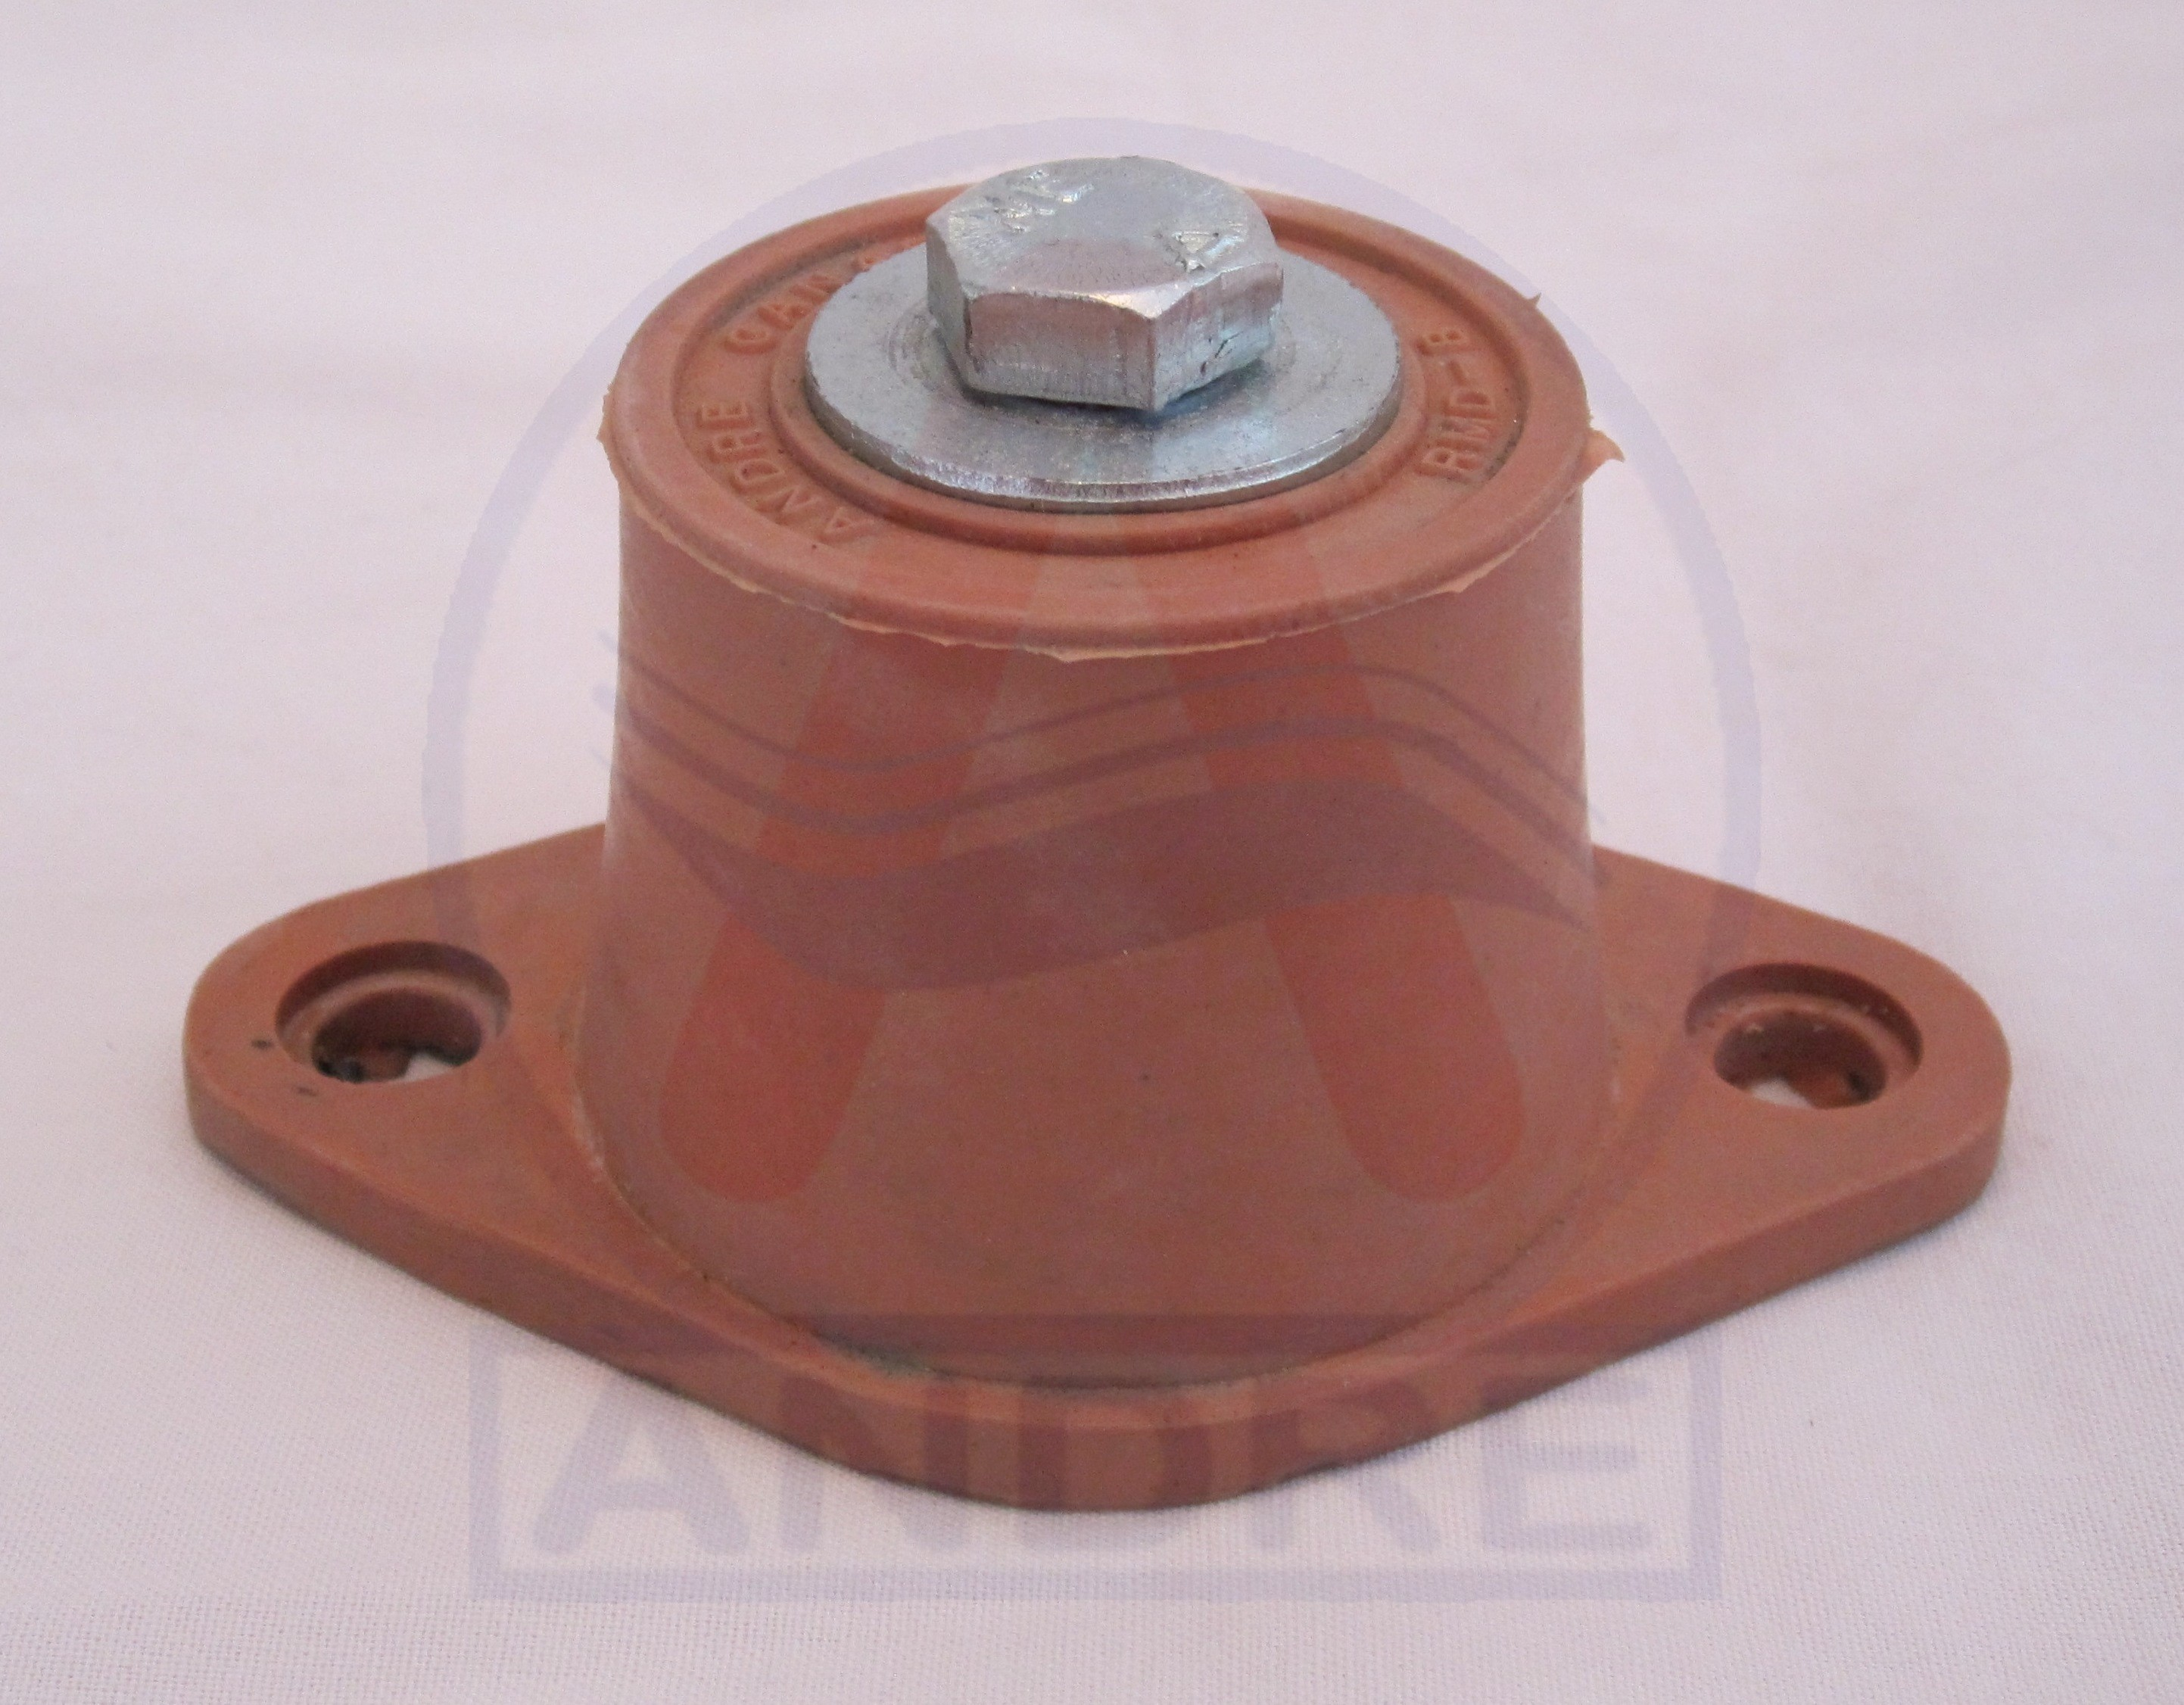 Rubber isolator mounts vibration control products